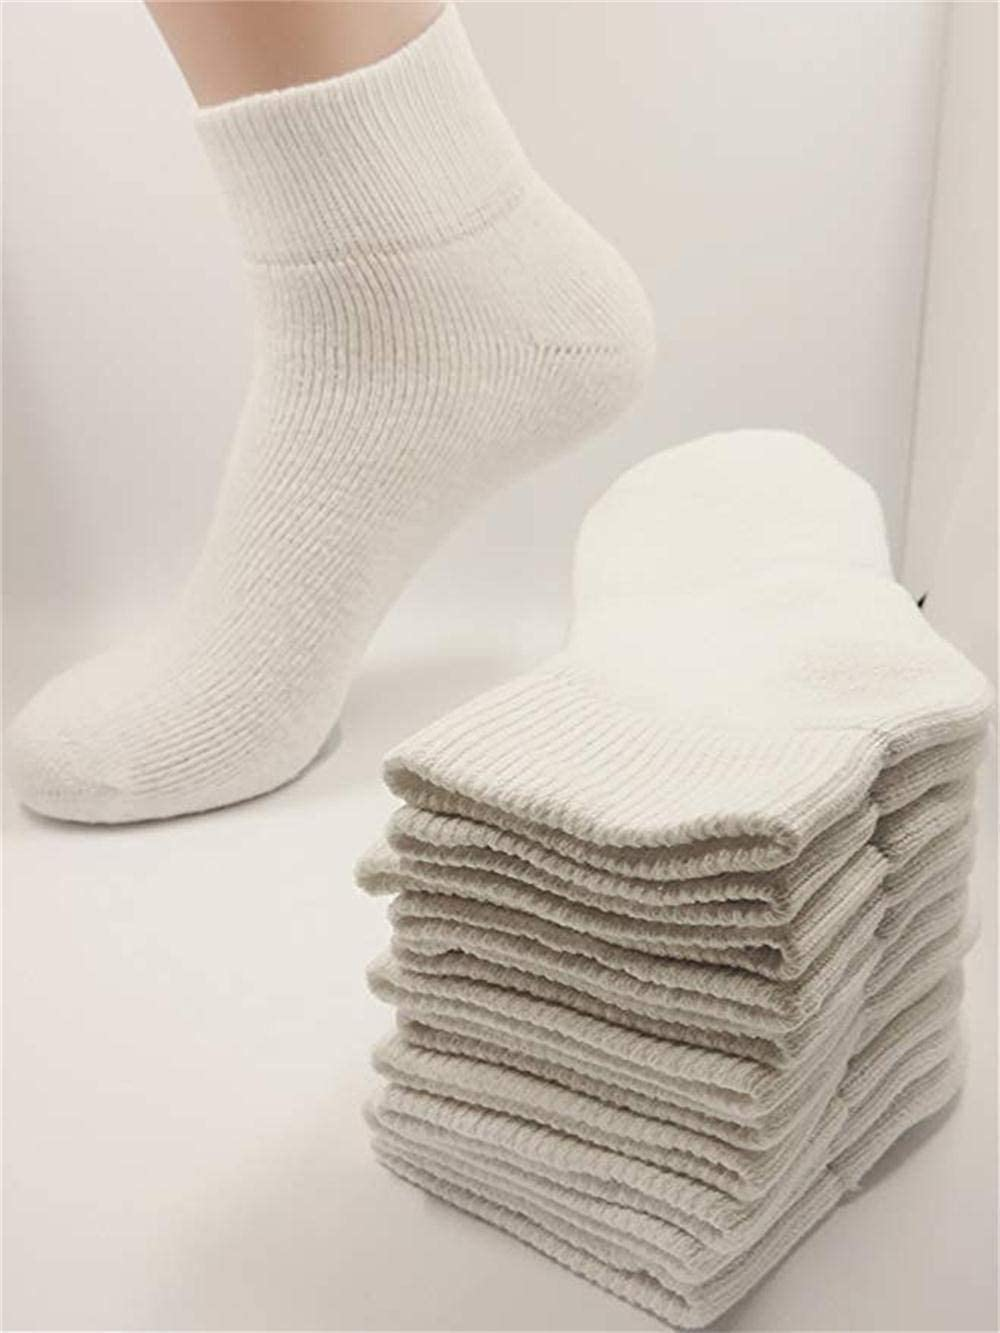 12 Pack Unisex Teens Cotton Comfortable Cushioned Athletic Socks Crew,Low Cut Quarter Cut No Show